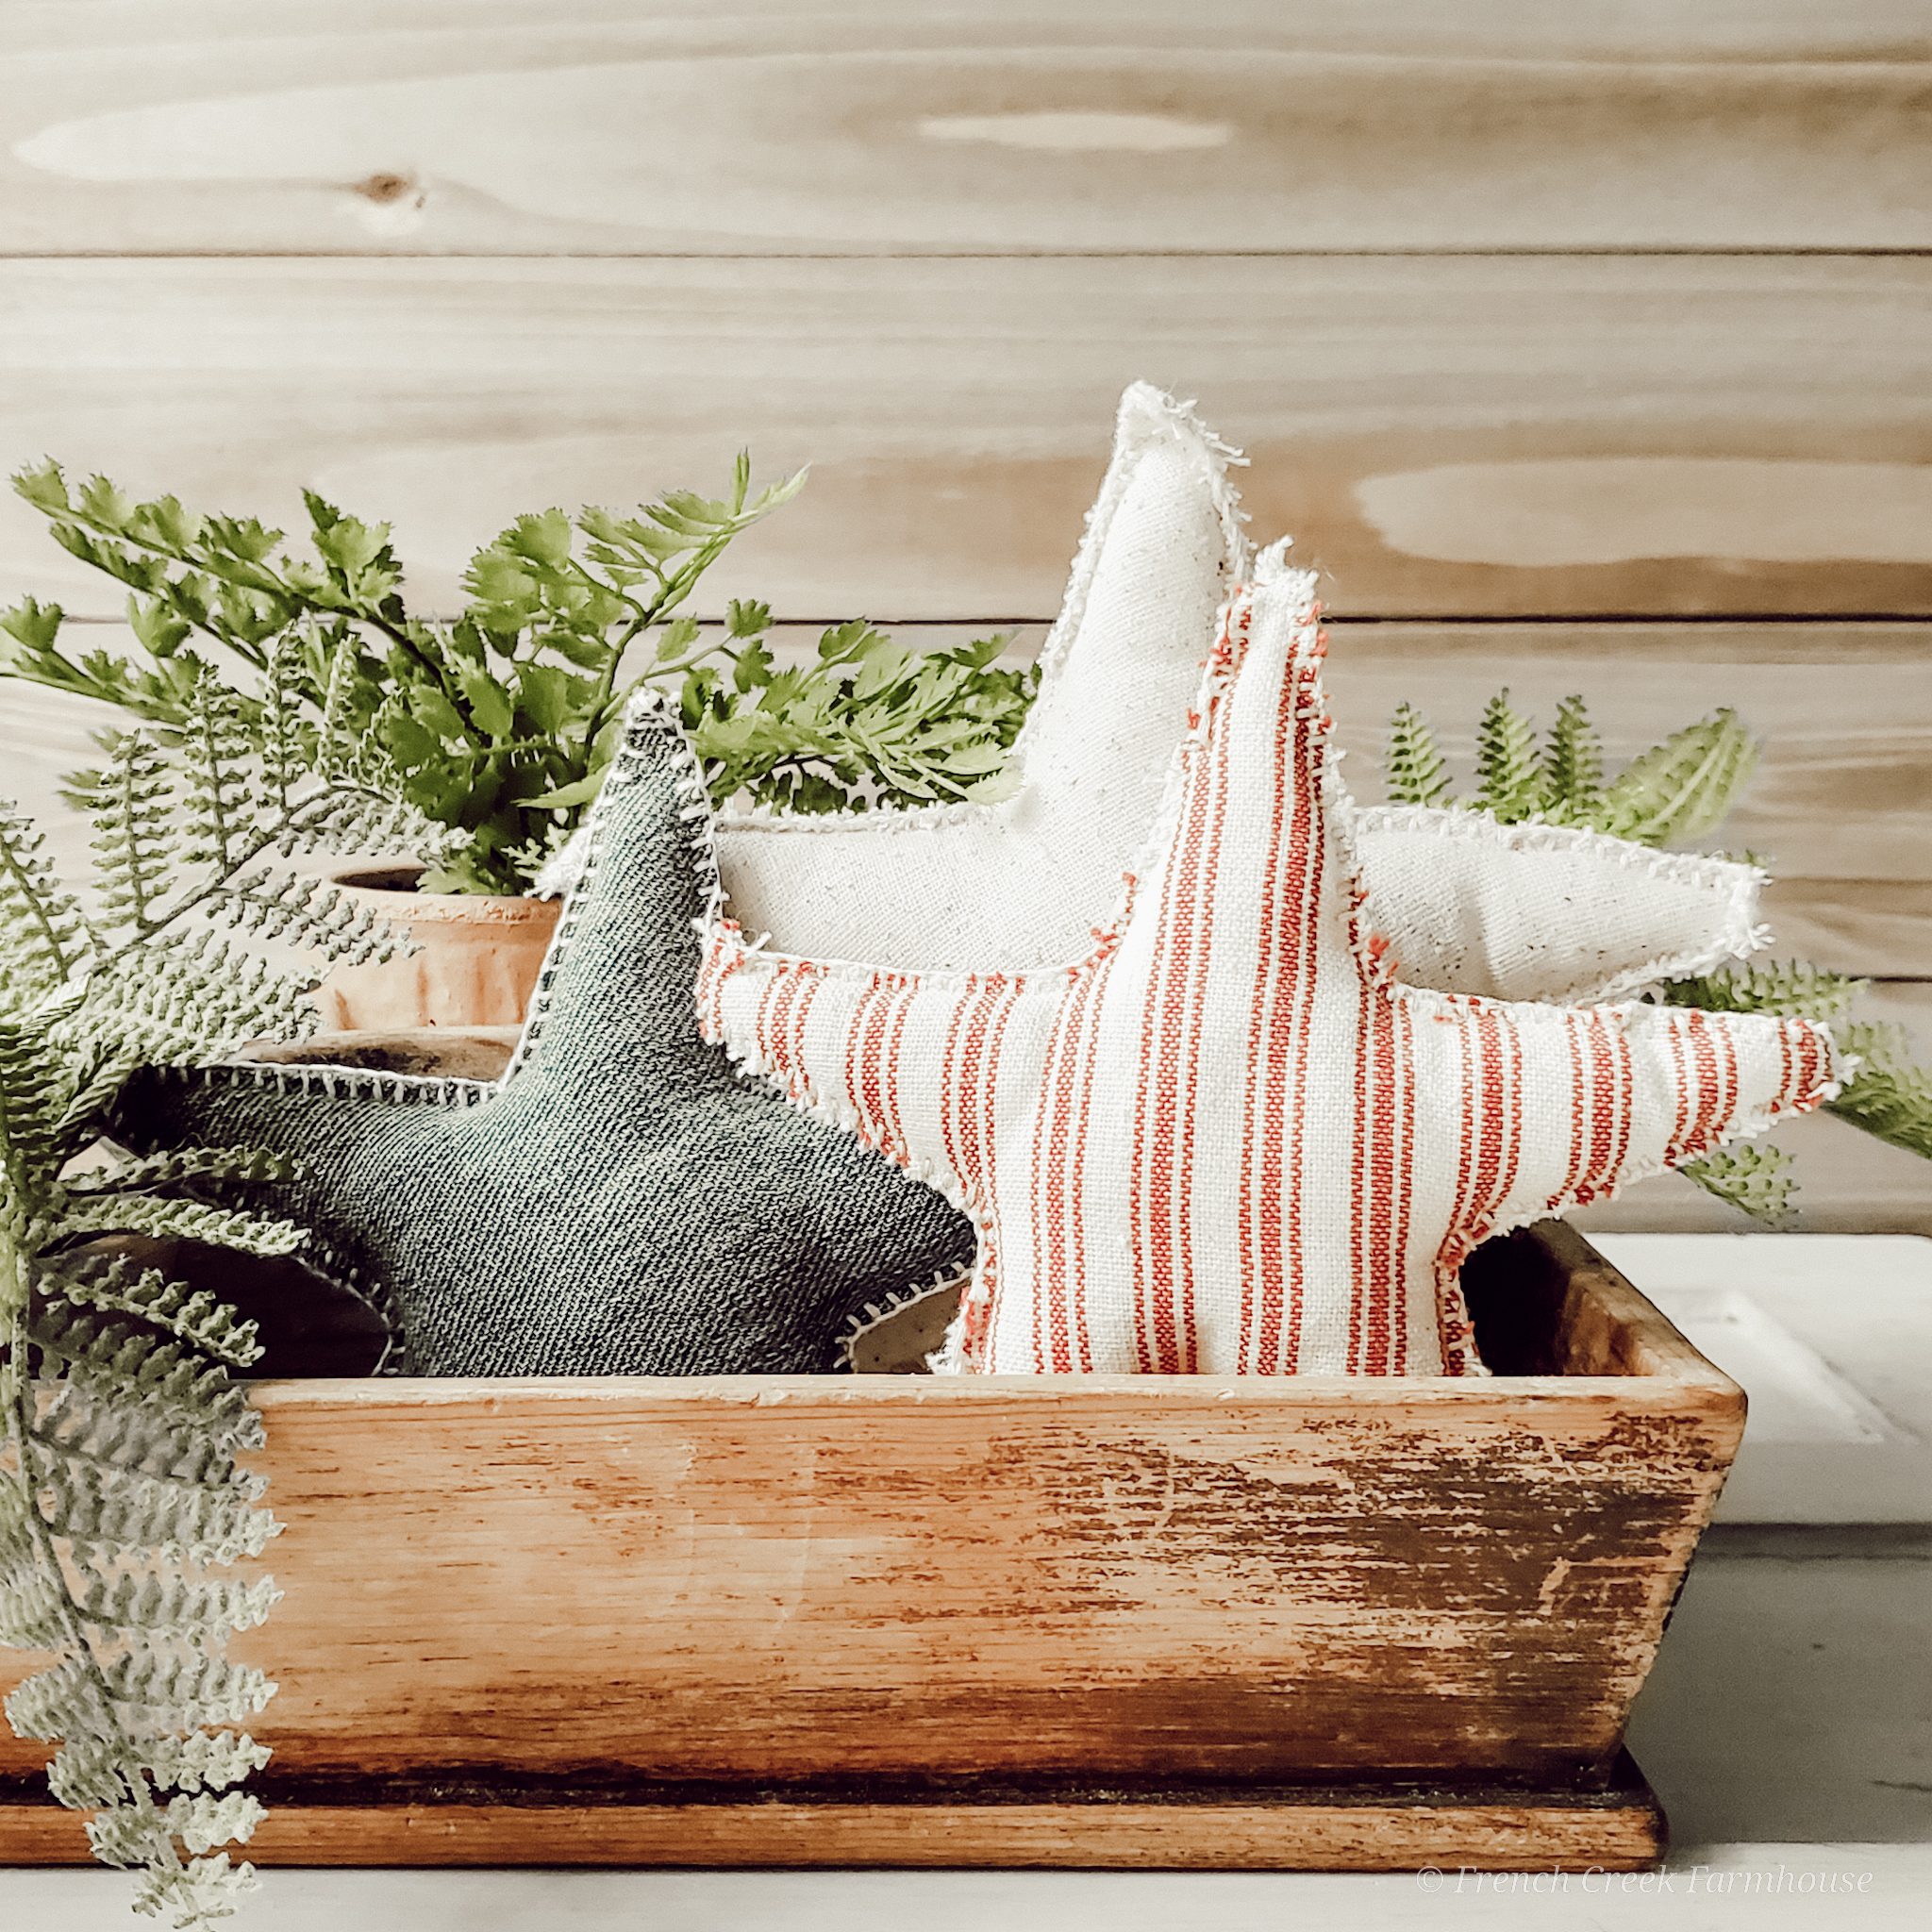 Add a touch of Americana to your farmhouse decor